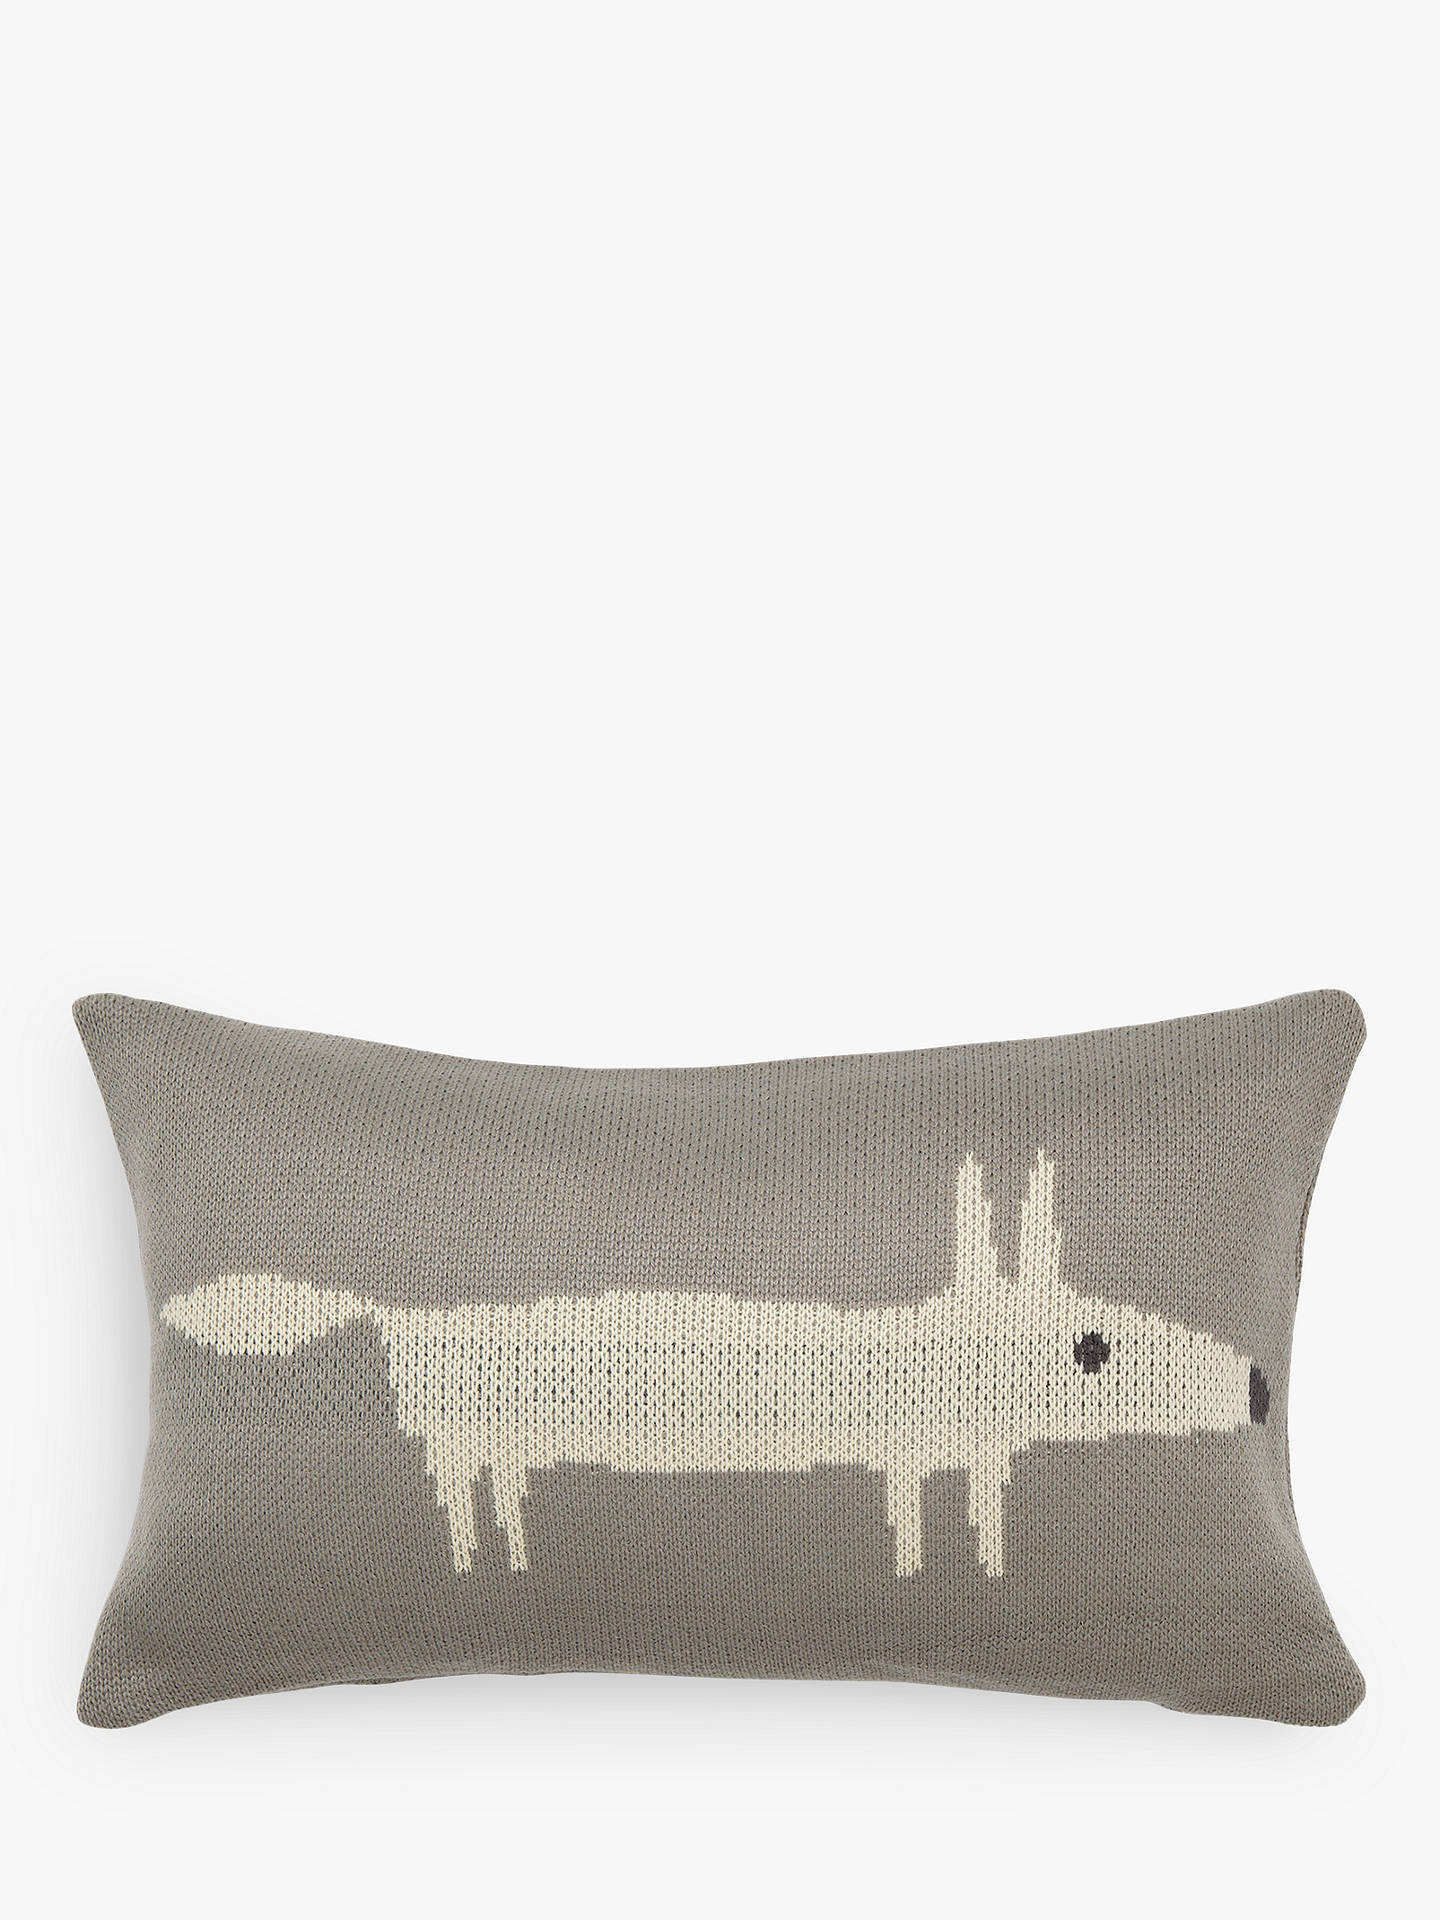 Buy Scion Mr Fox Knitted Cushion, Silver Online at johnlewis.com